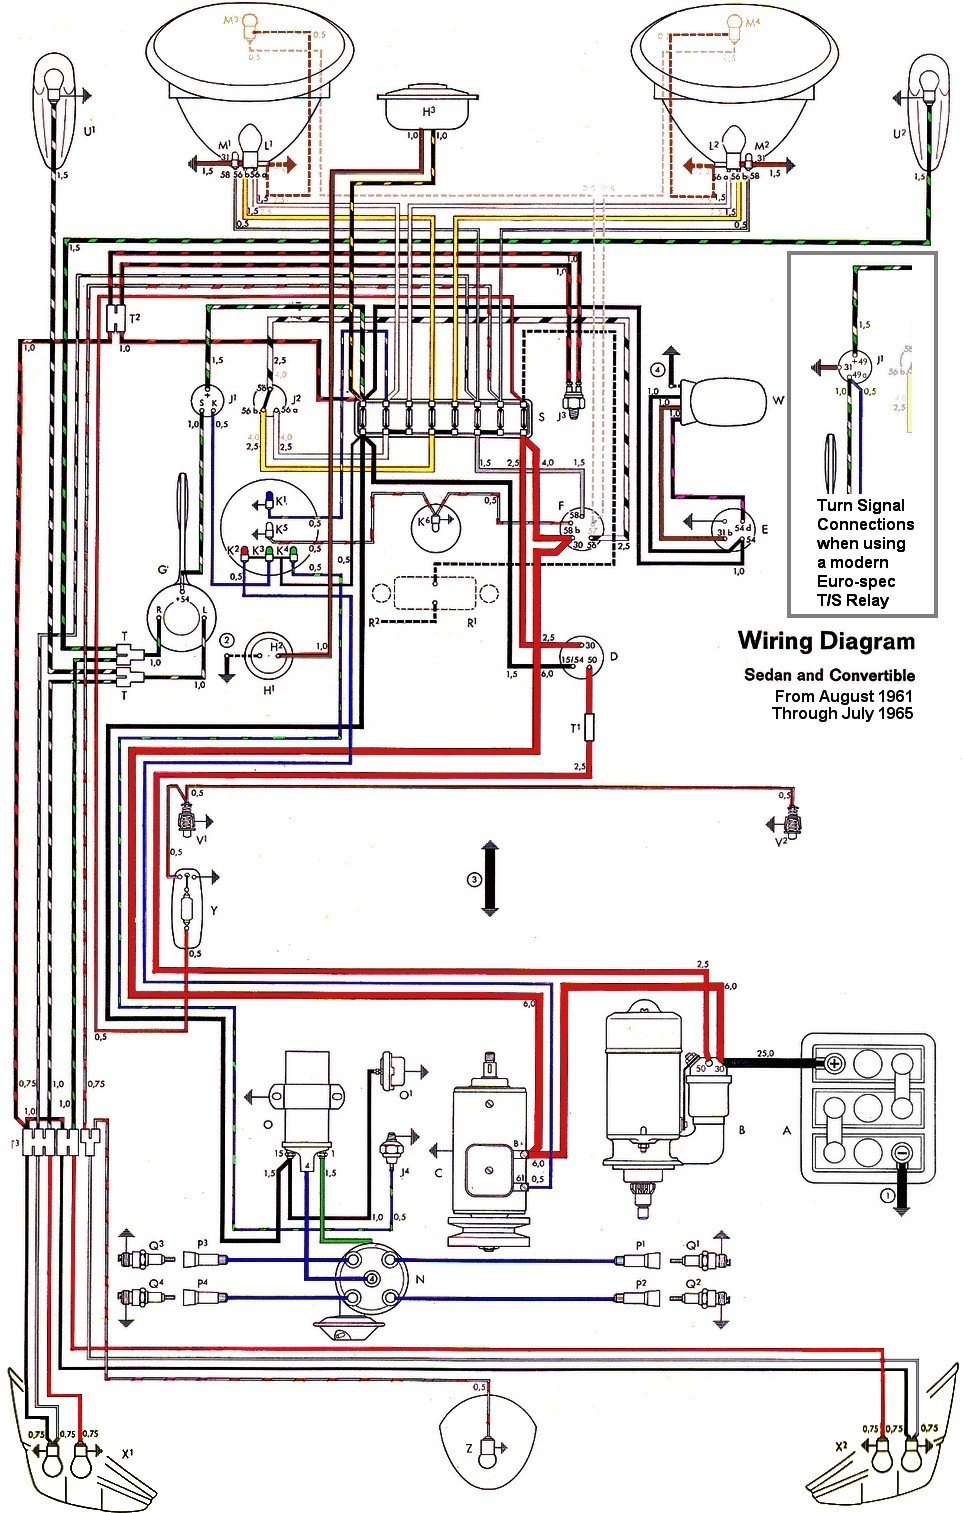 bug_62 65withinset volkswagen wiring diagram volkswagen golf wiring diagram \u2022 free vw type 3 wiring harness at cos-gaming.co